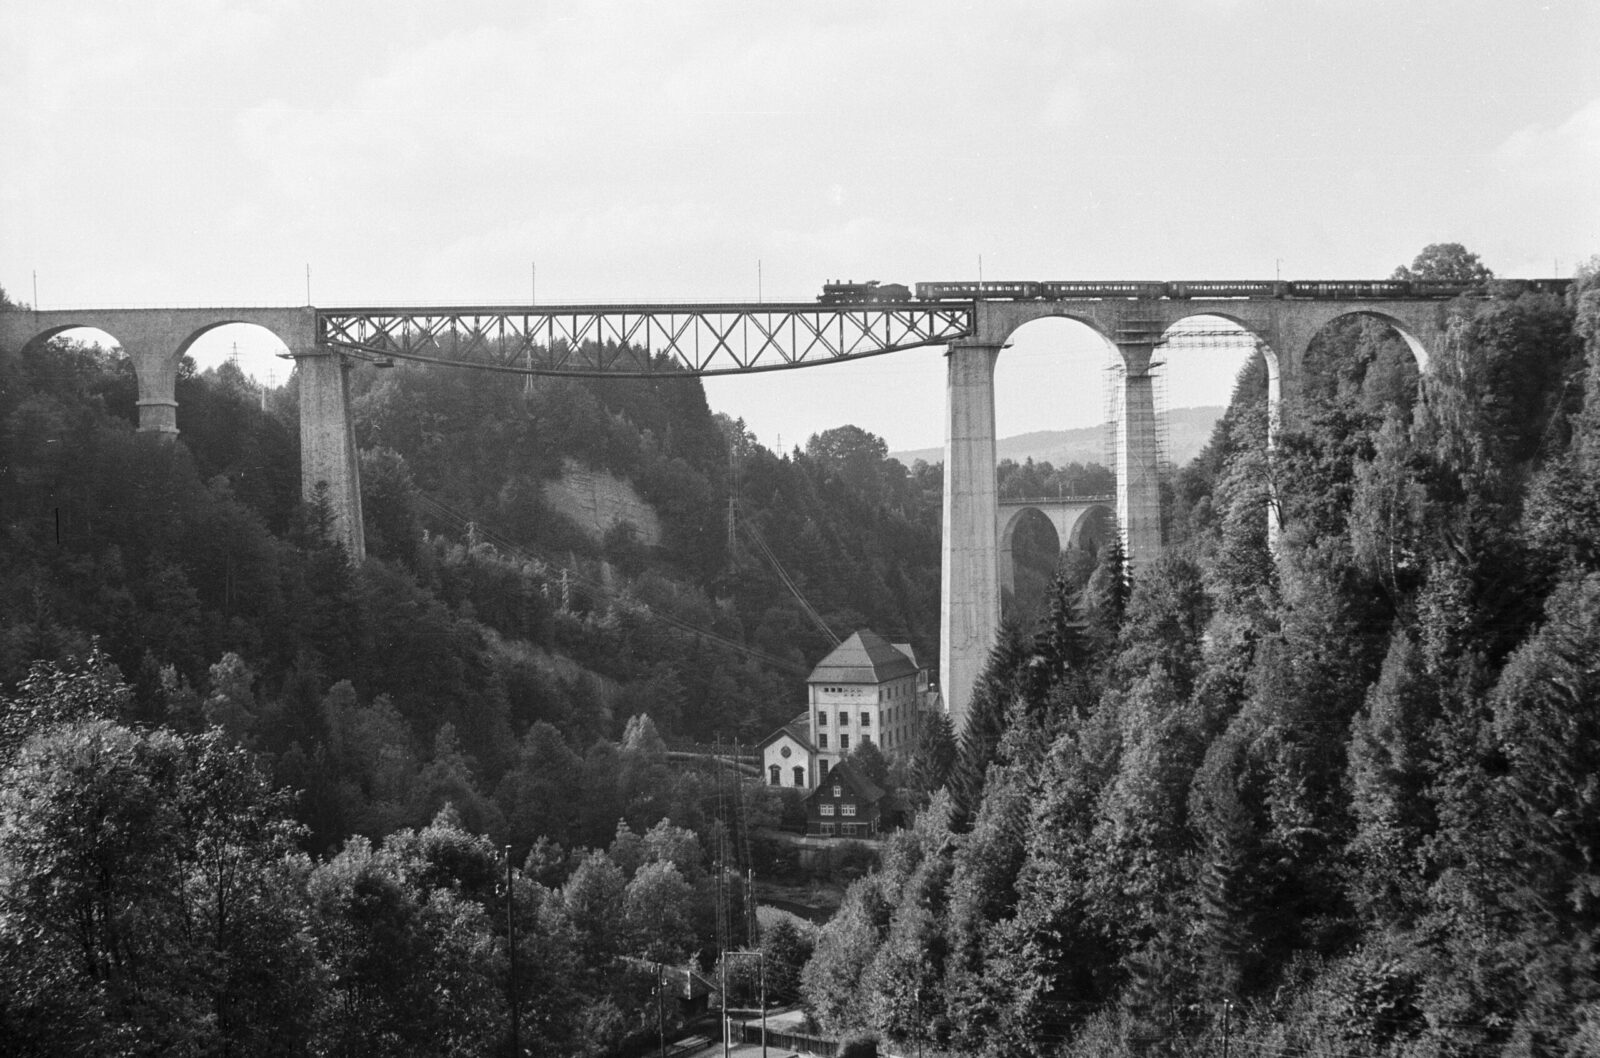 At 99 metres, still the highest railway bridge in Switzerland: the Südostbahn's Sitter Viaduct (built in 1910) near St. Gallen is a combination of stone arches at the ends with a 120-metre-long steel truss in the middle.